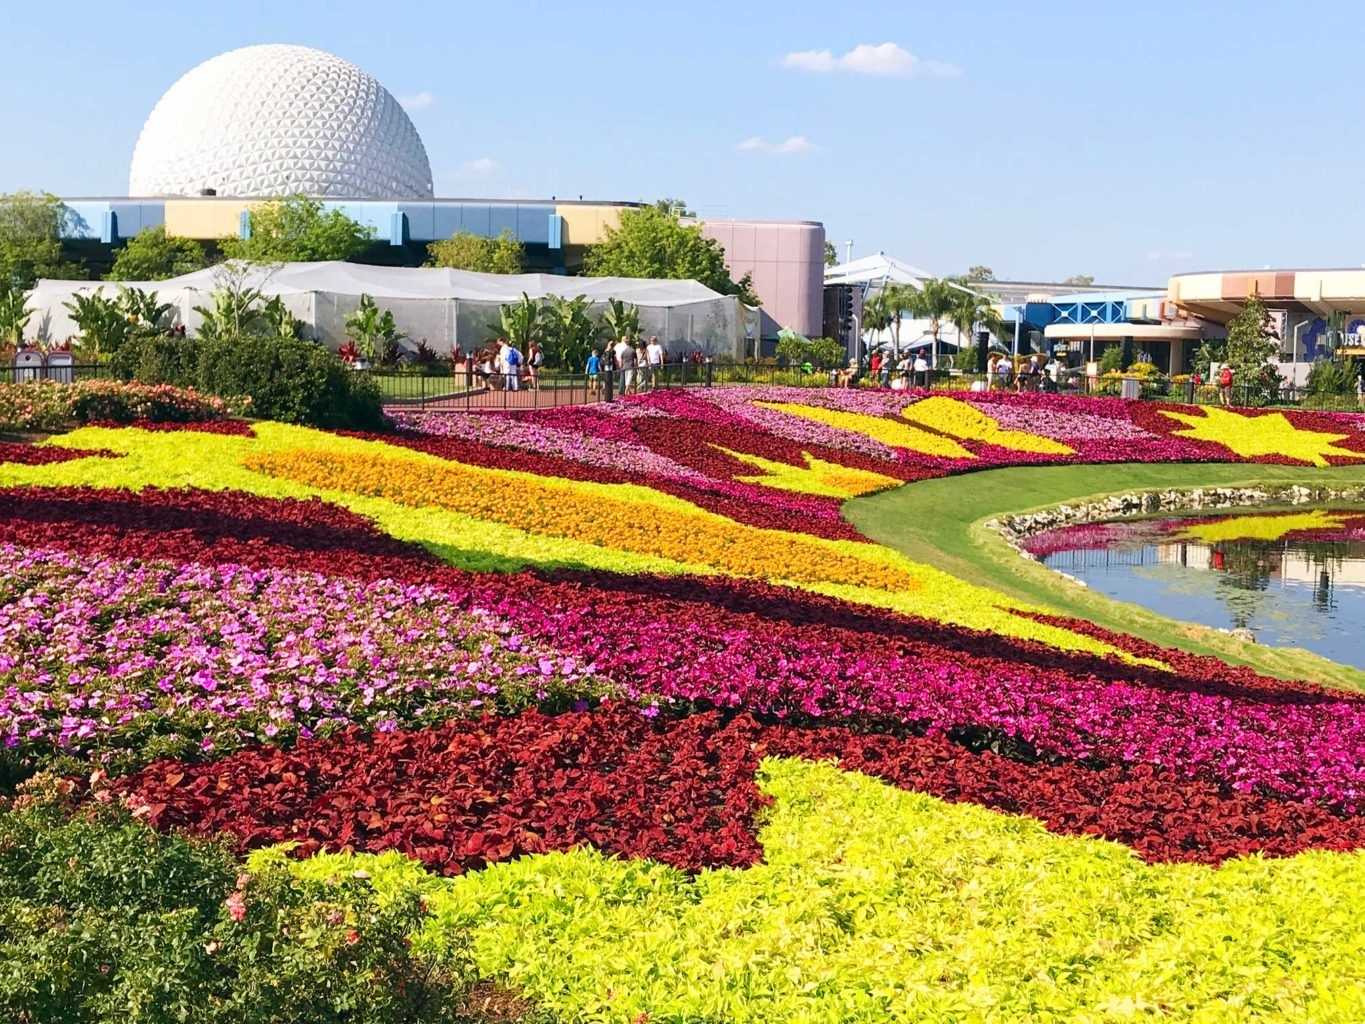 Essential Guide To Epcot Flower And Garden Festival For Families within Epcot Flower And Garden Festival Guide